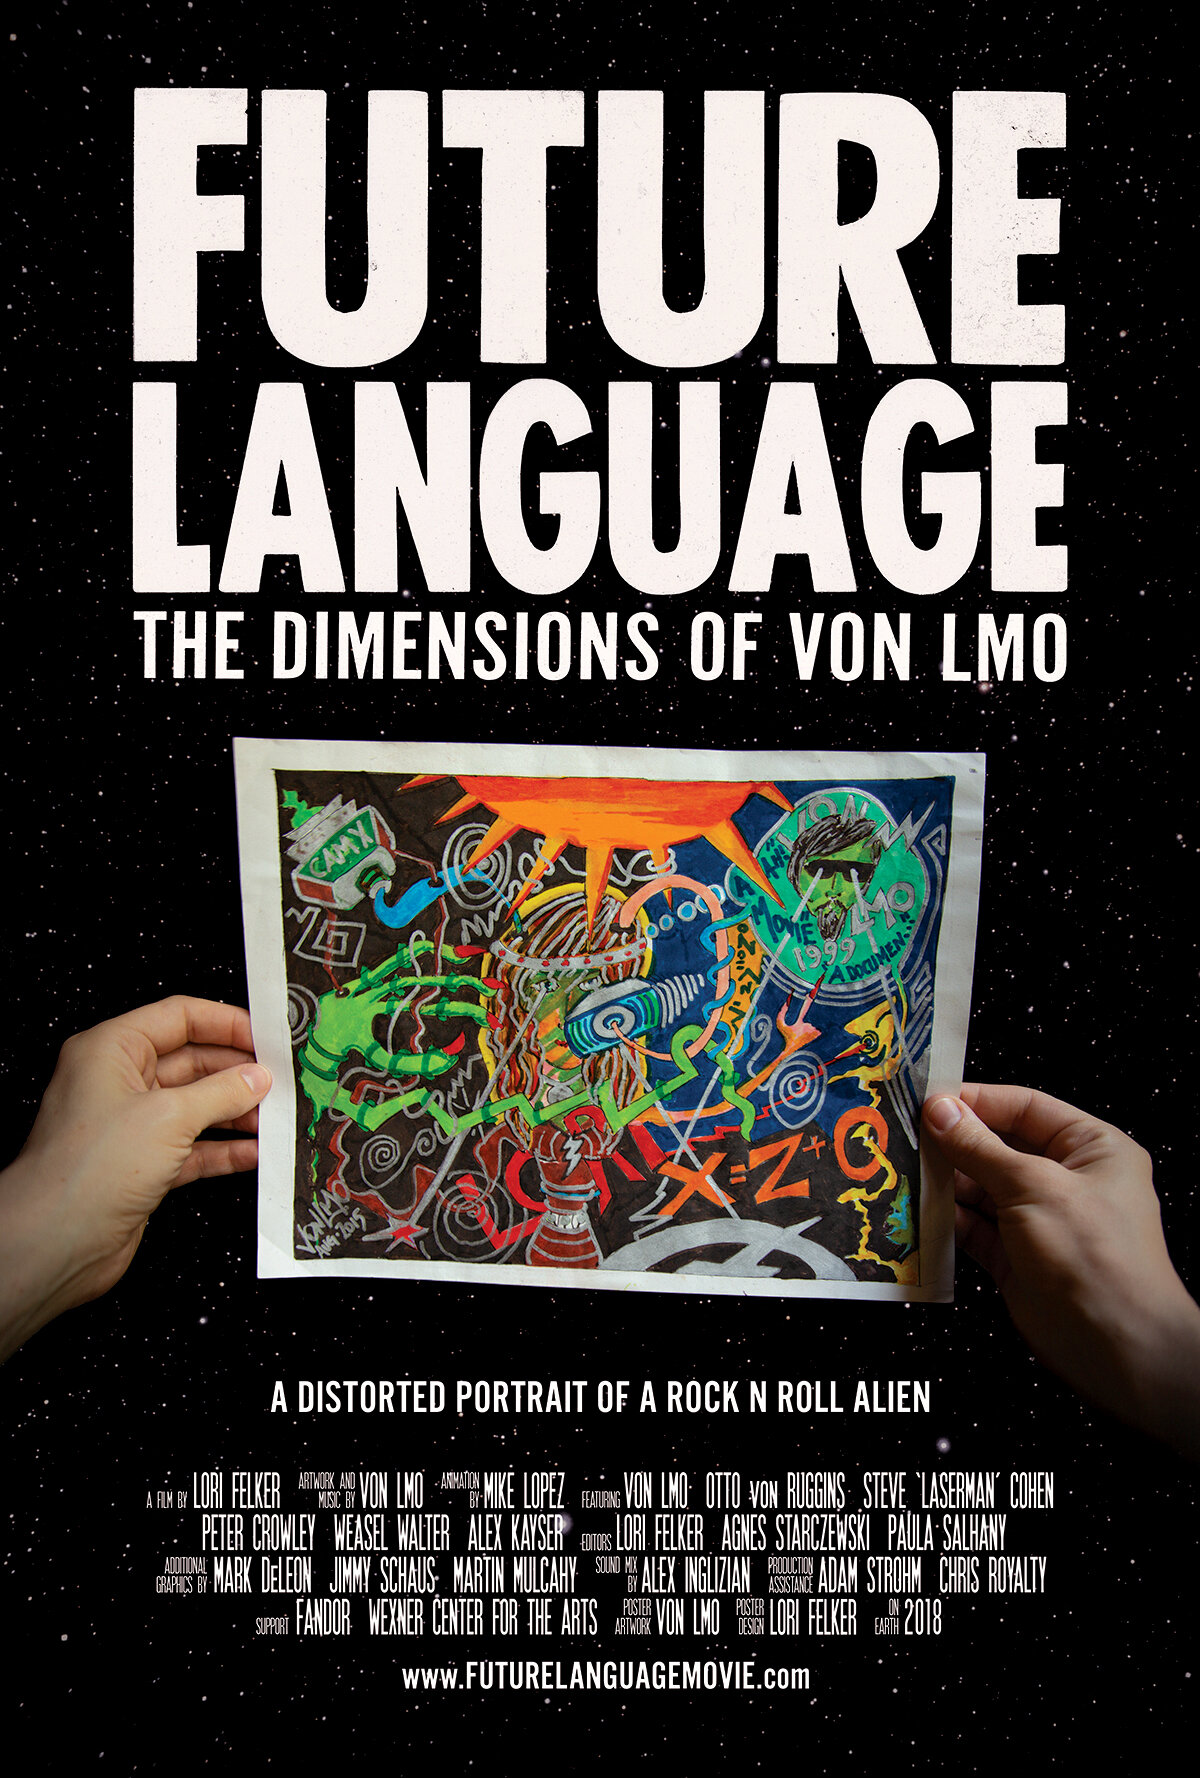 Future Language: The Dimensions of VON LMO poster.